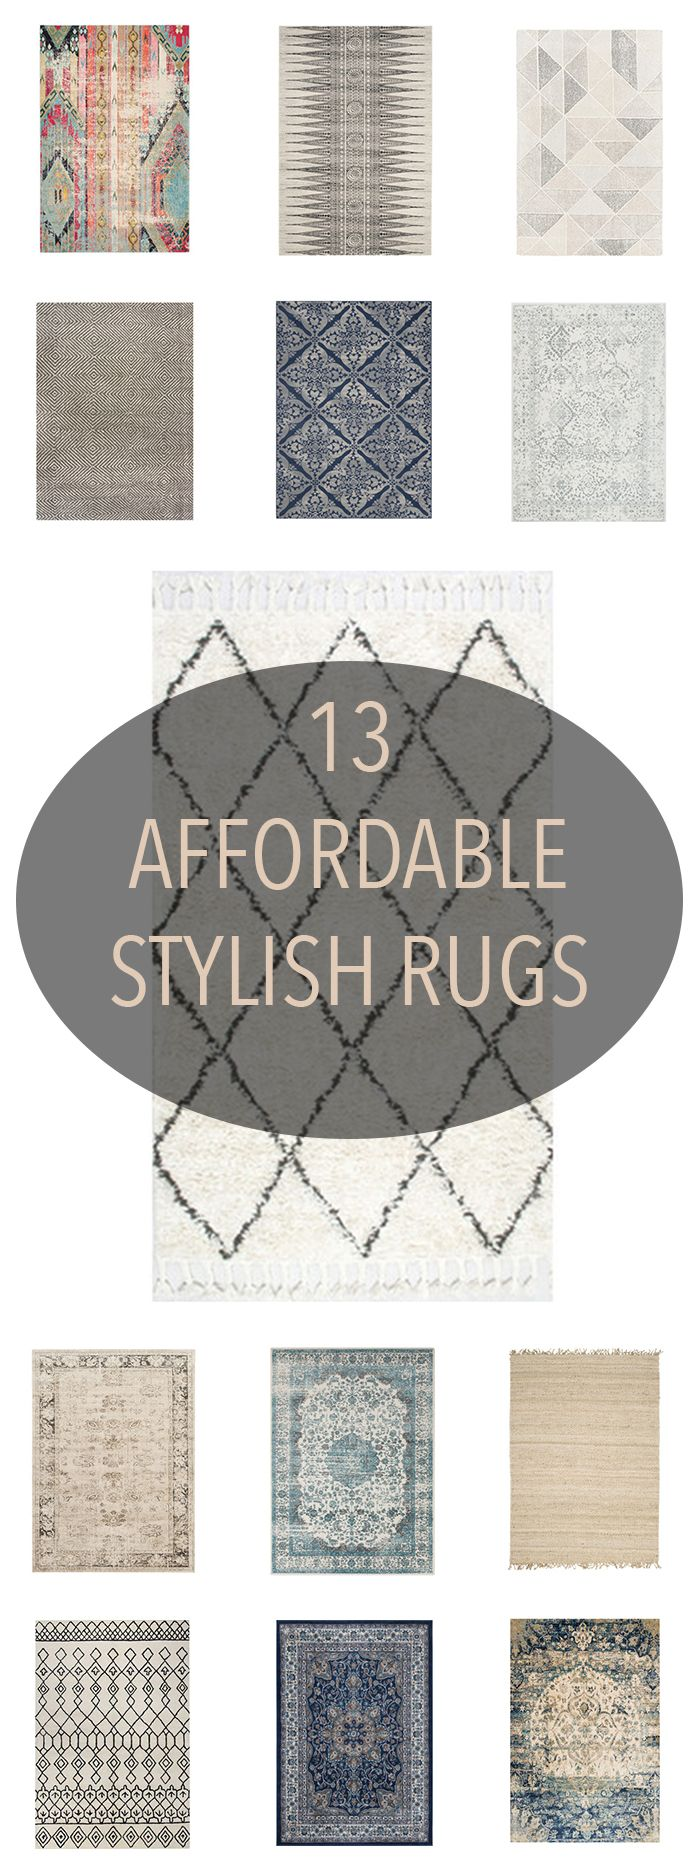 affordable-rugs-1